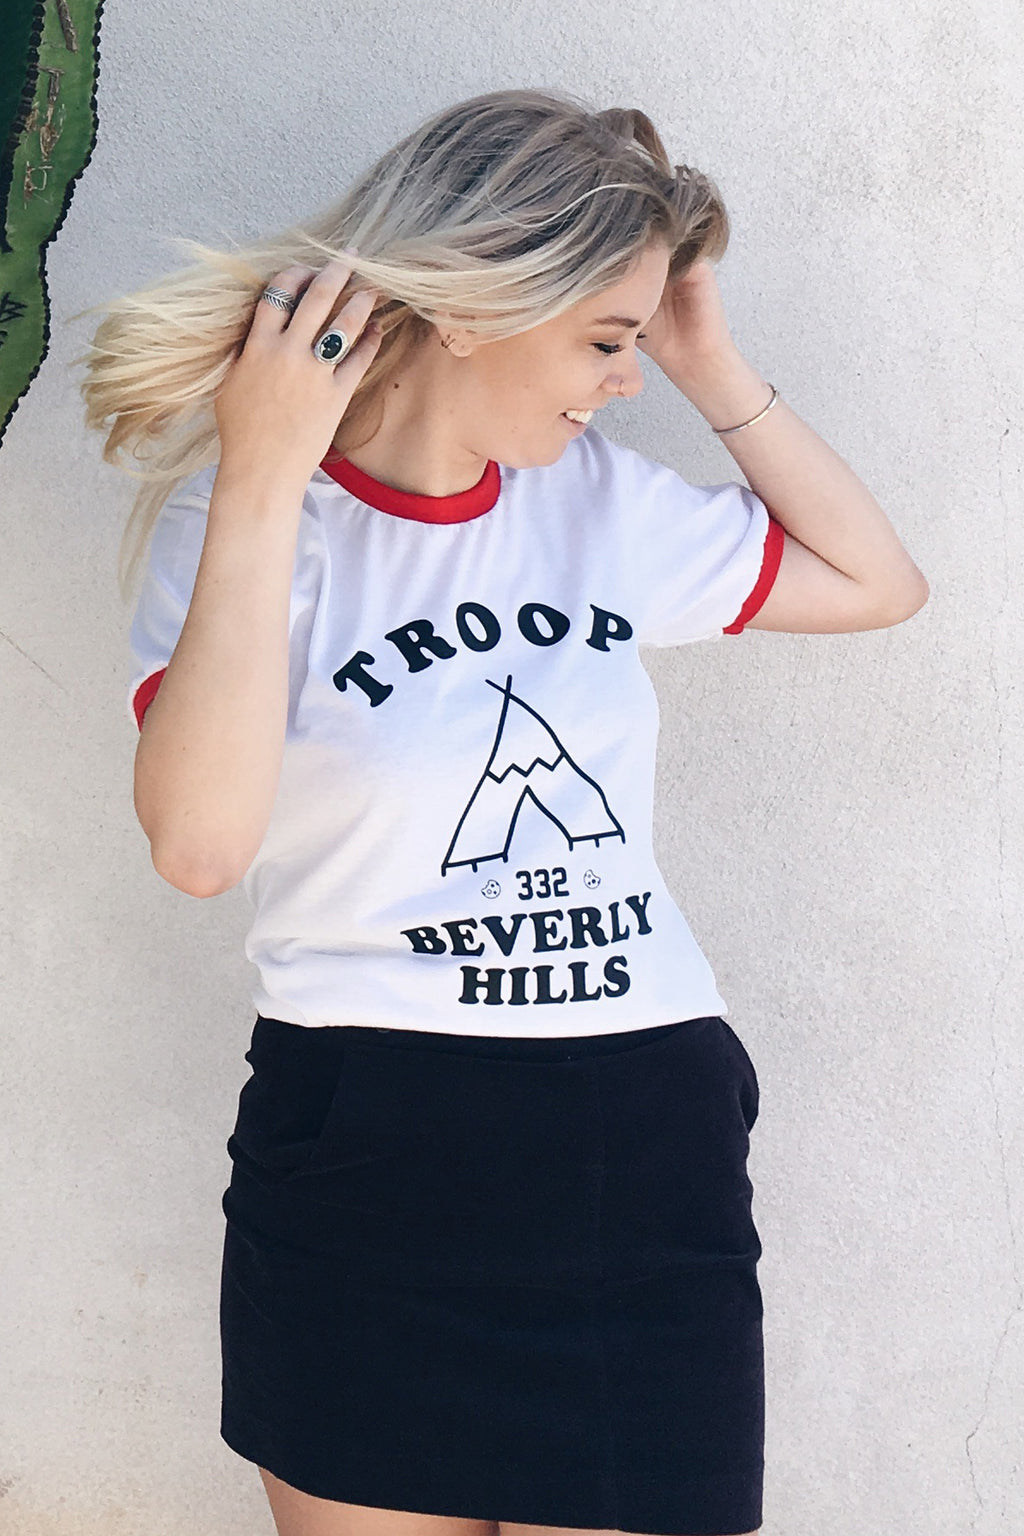 Troop Beverly Hills Ringer Tee - Totally Good Time